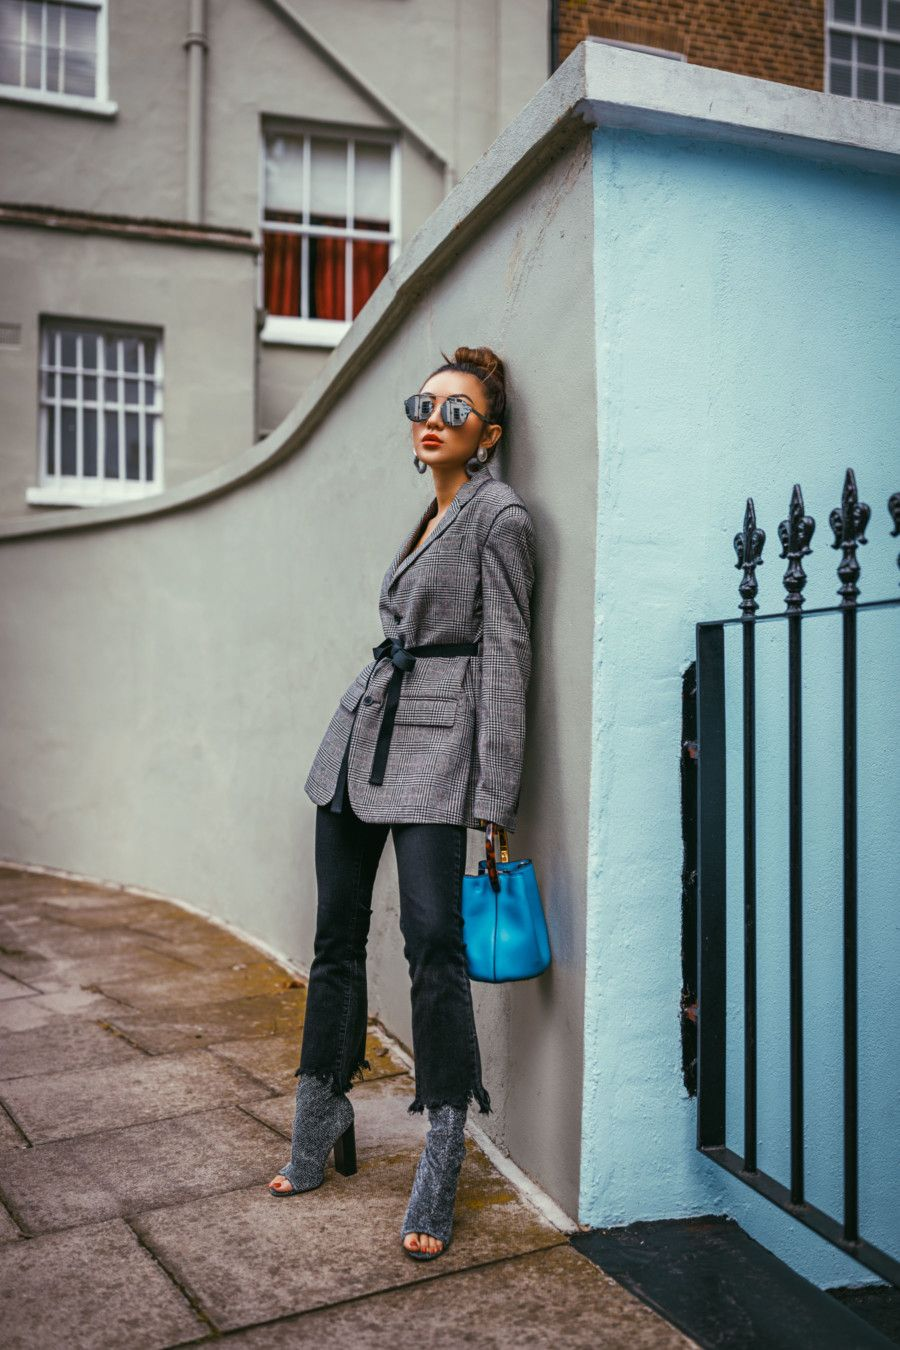 Best Camera Bags 2020 Best Cameras for Fashion Bloggers | Women's fashion trends 2019